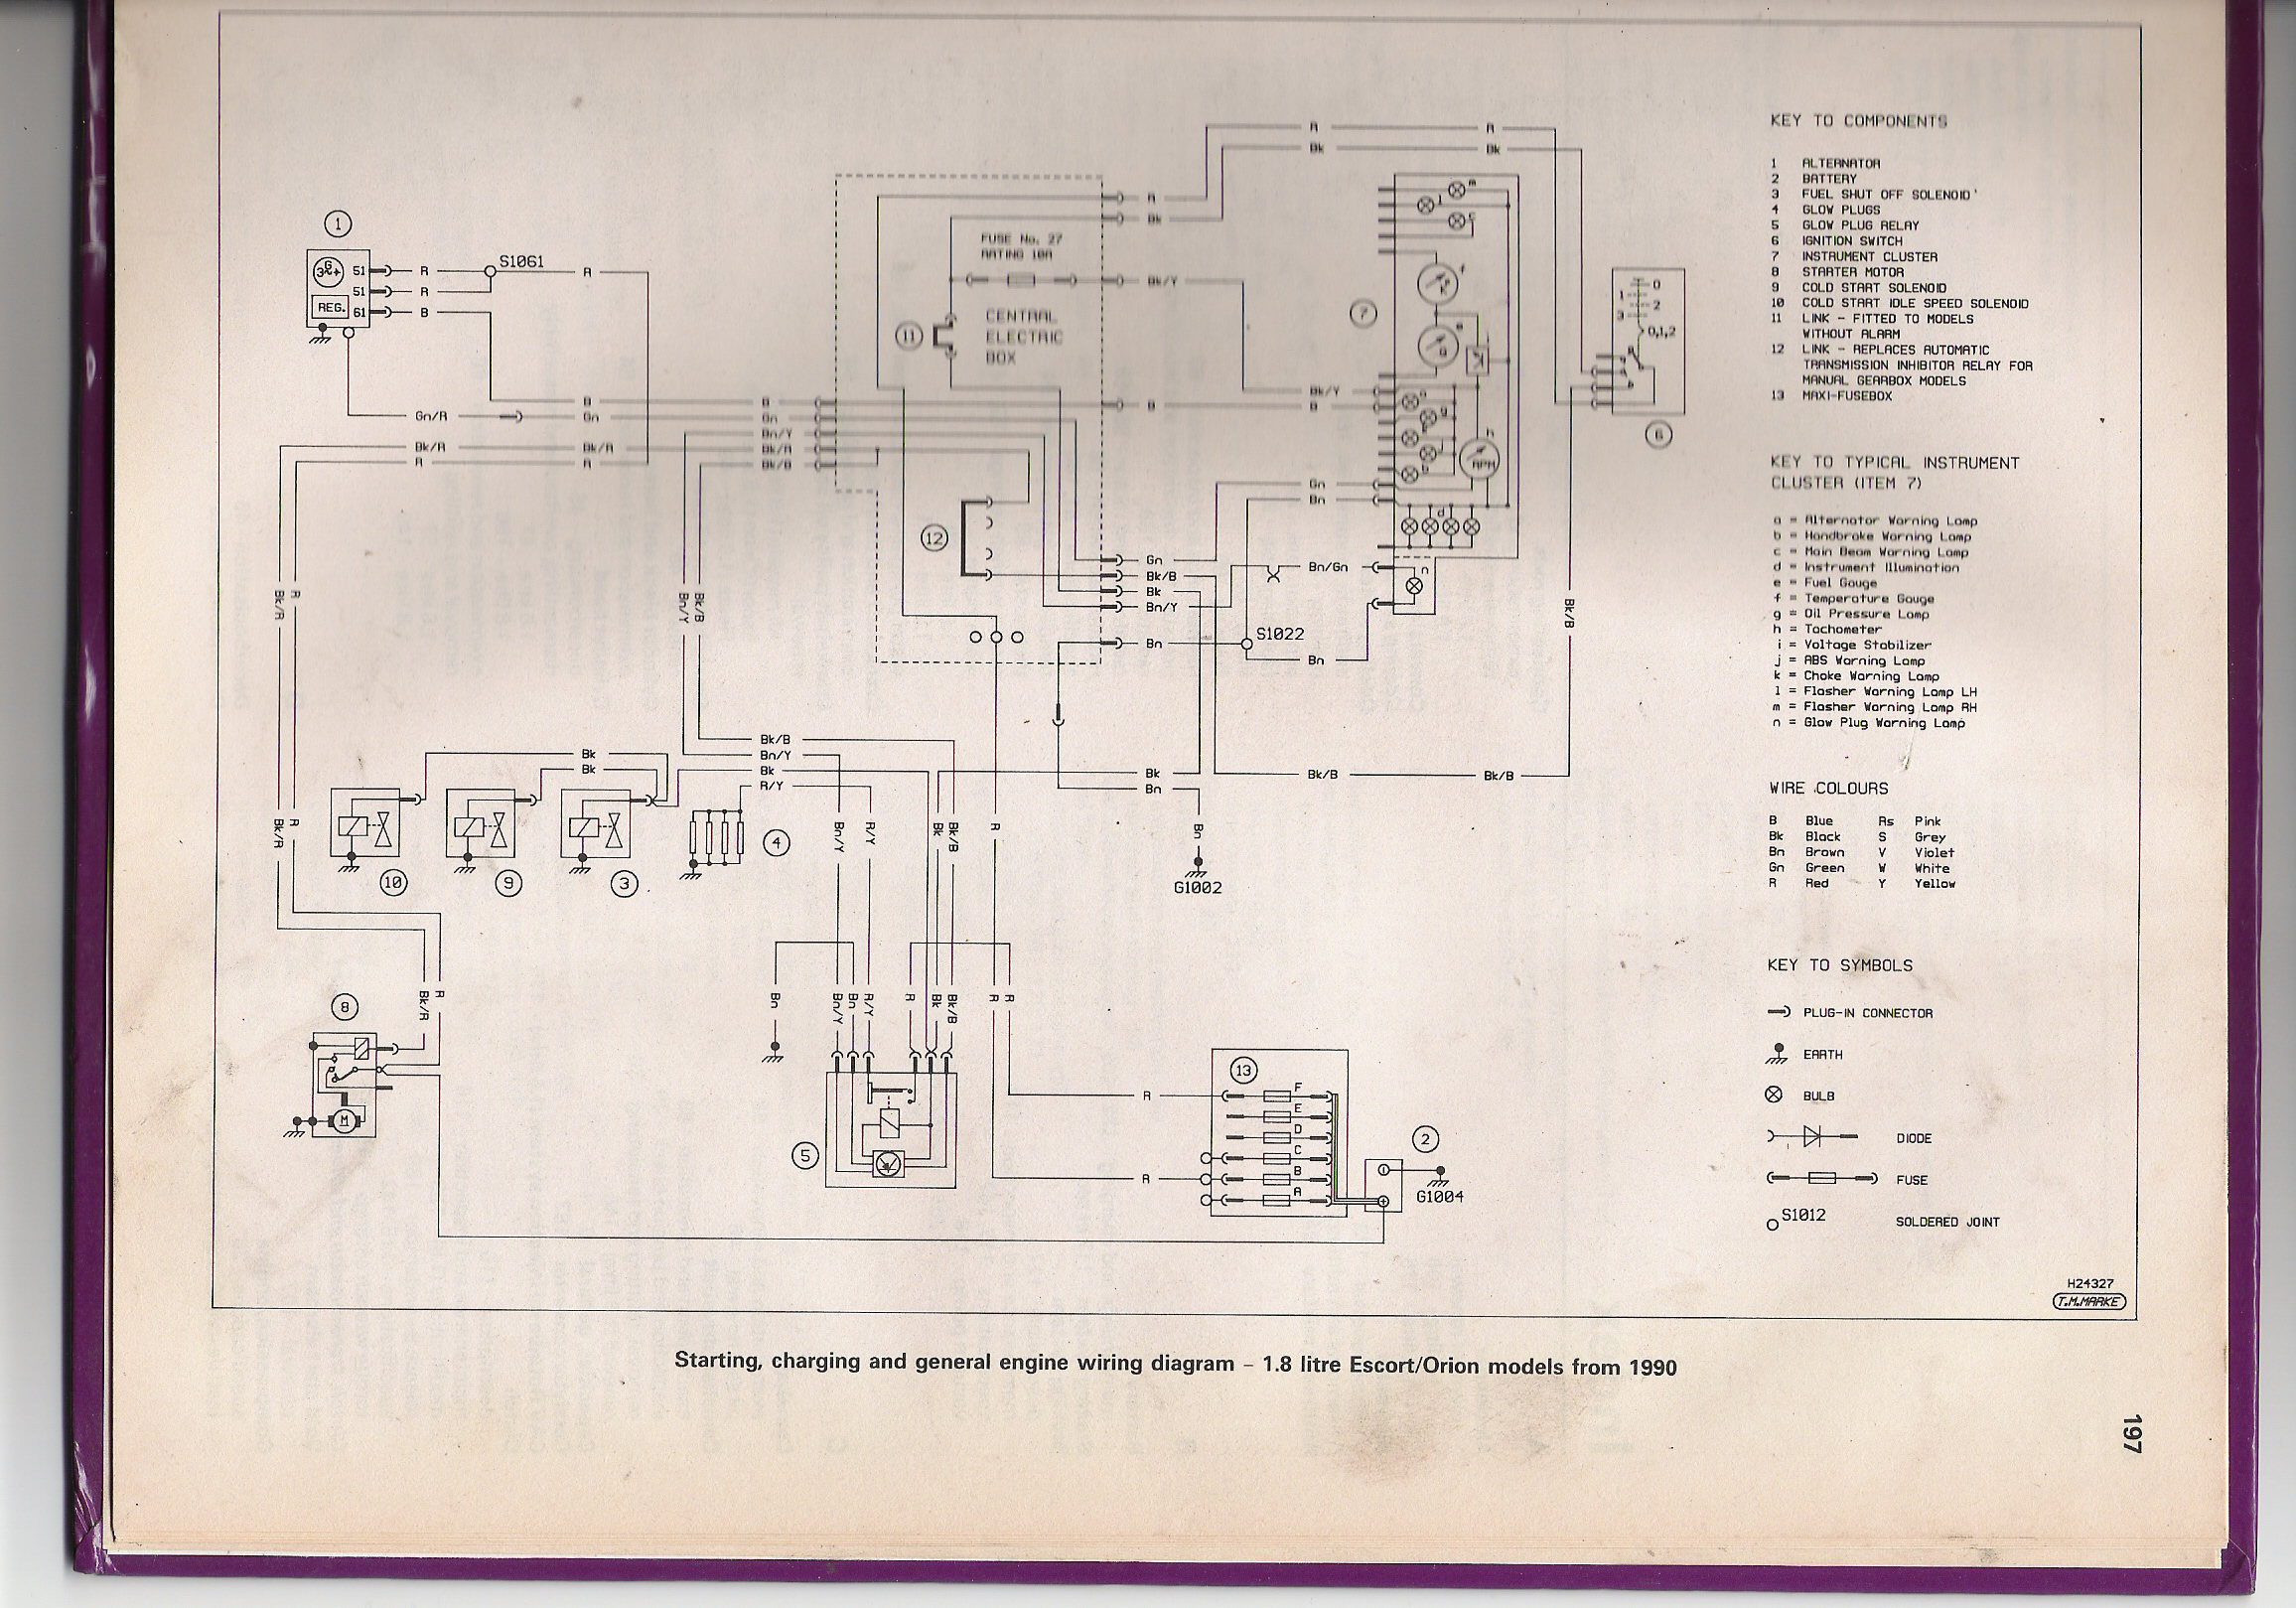 fordwiringdl mk4 wiring diagram wiring diagram symbols \u2022 wiring diagrams j 1999 ford escort wiring diagram pdf at aneh.co